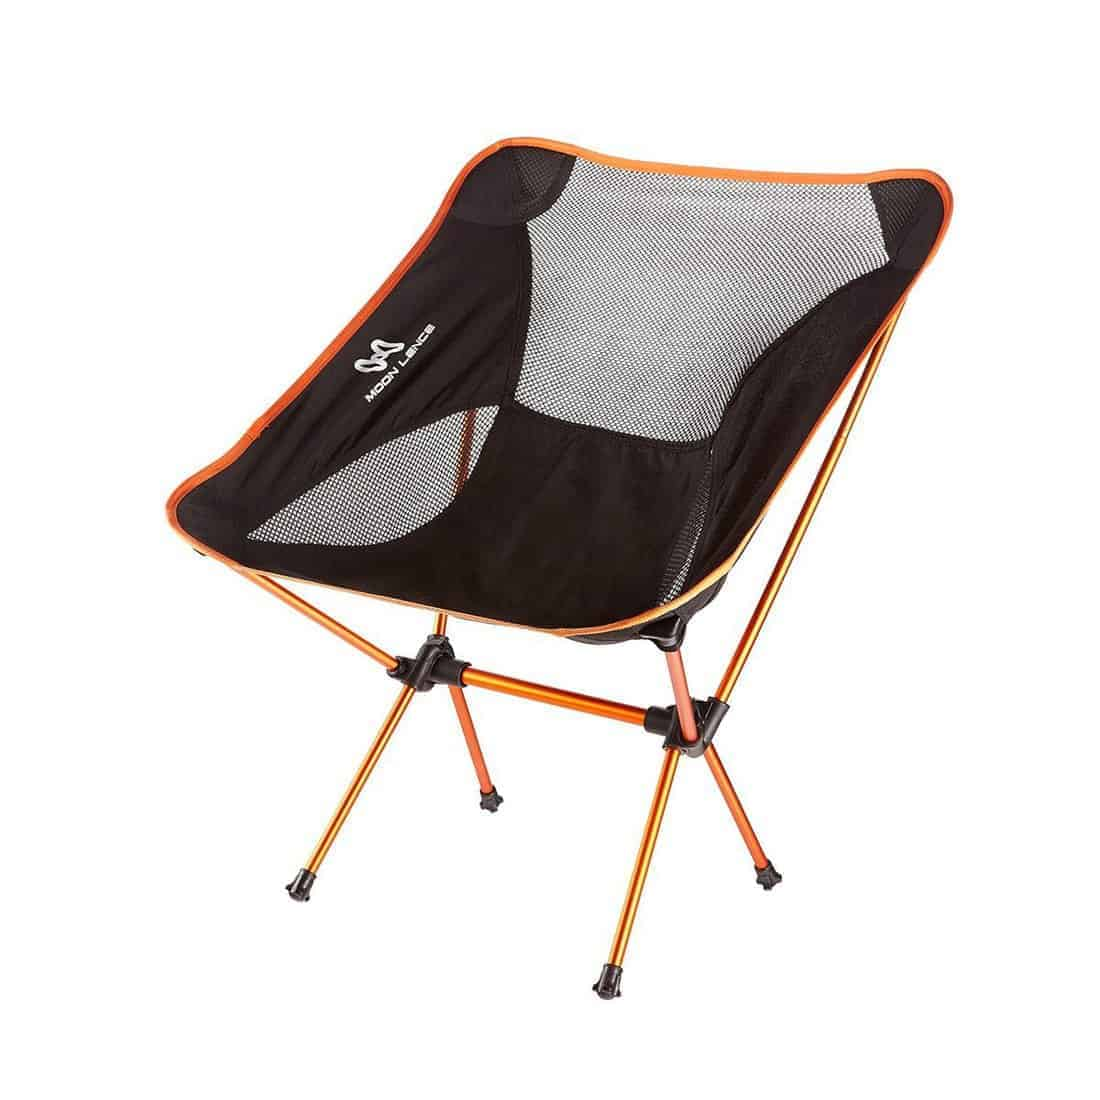 camping chair accessories brown leather office chairs 10 night photography i couldnt live without